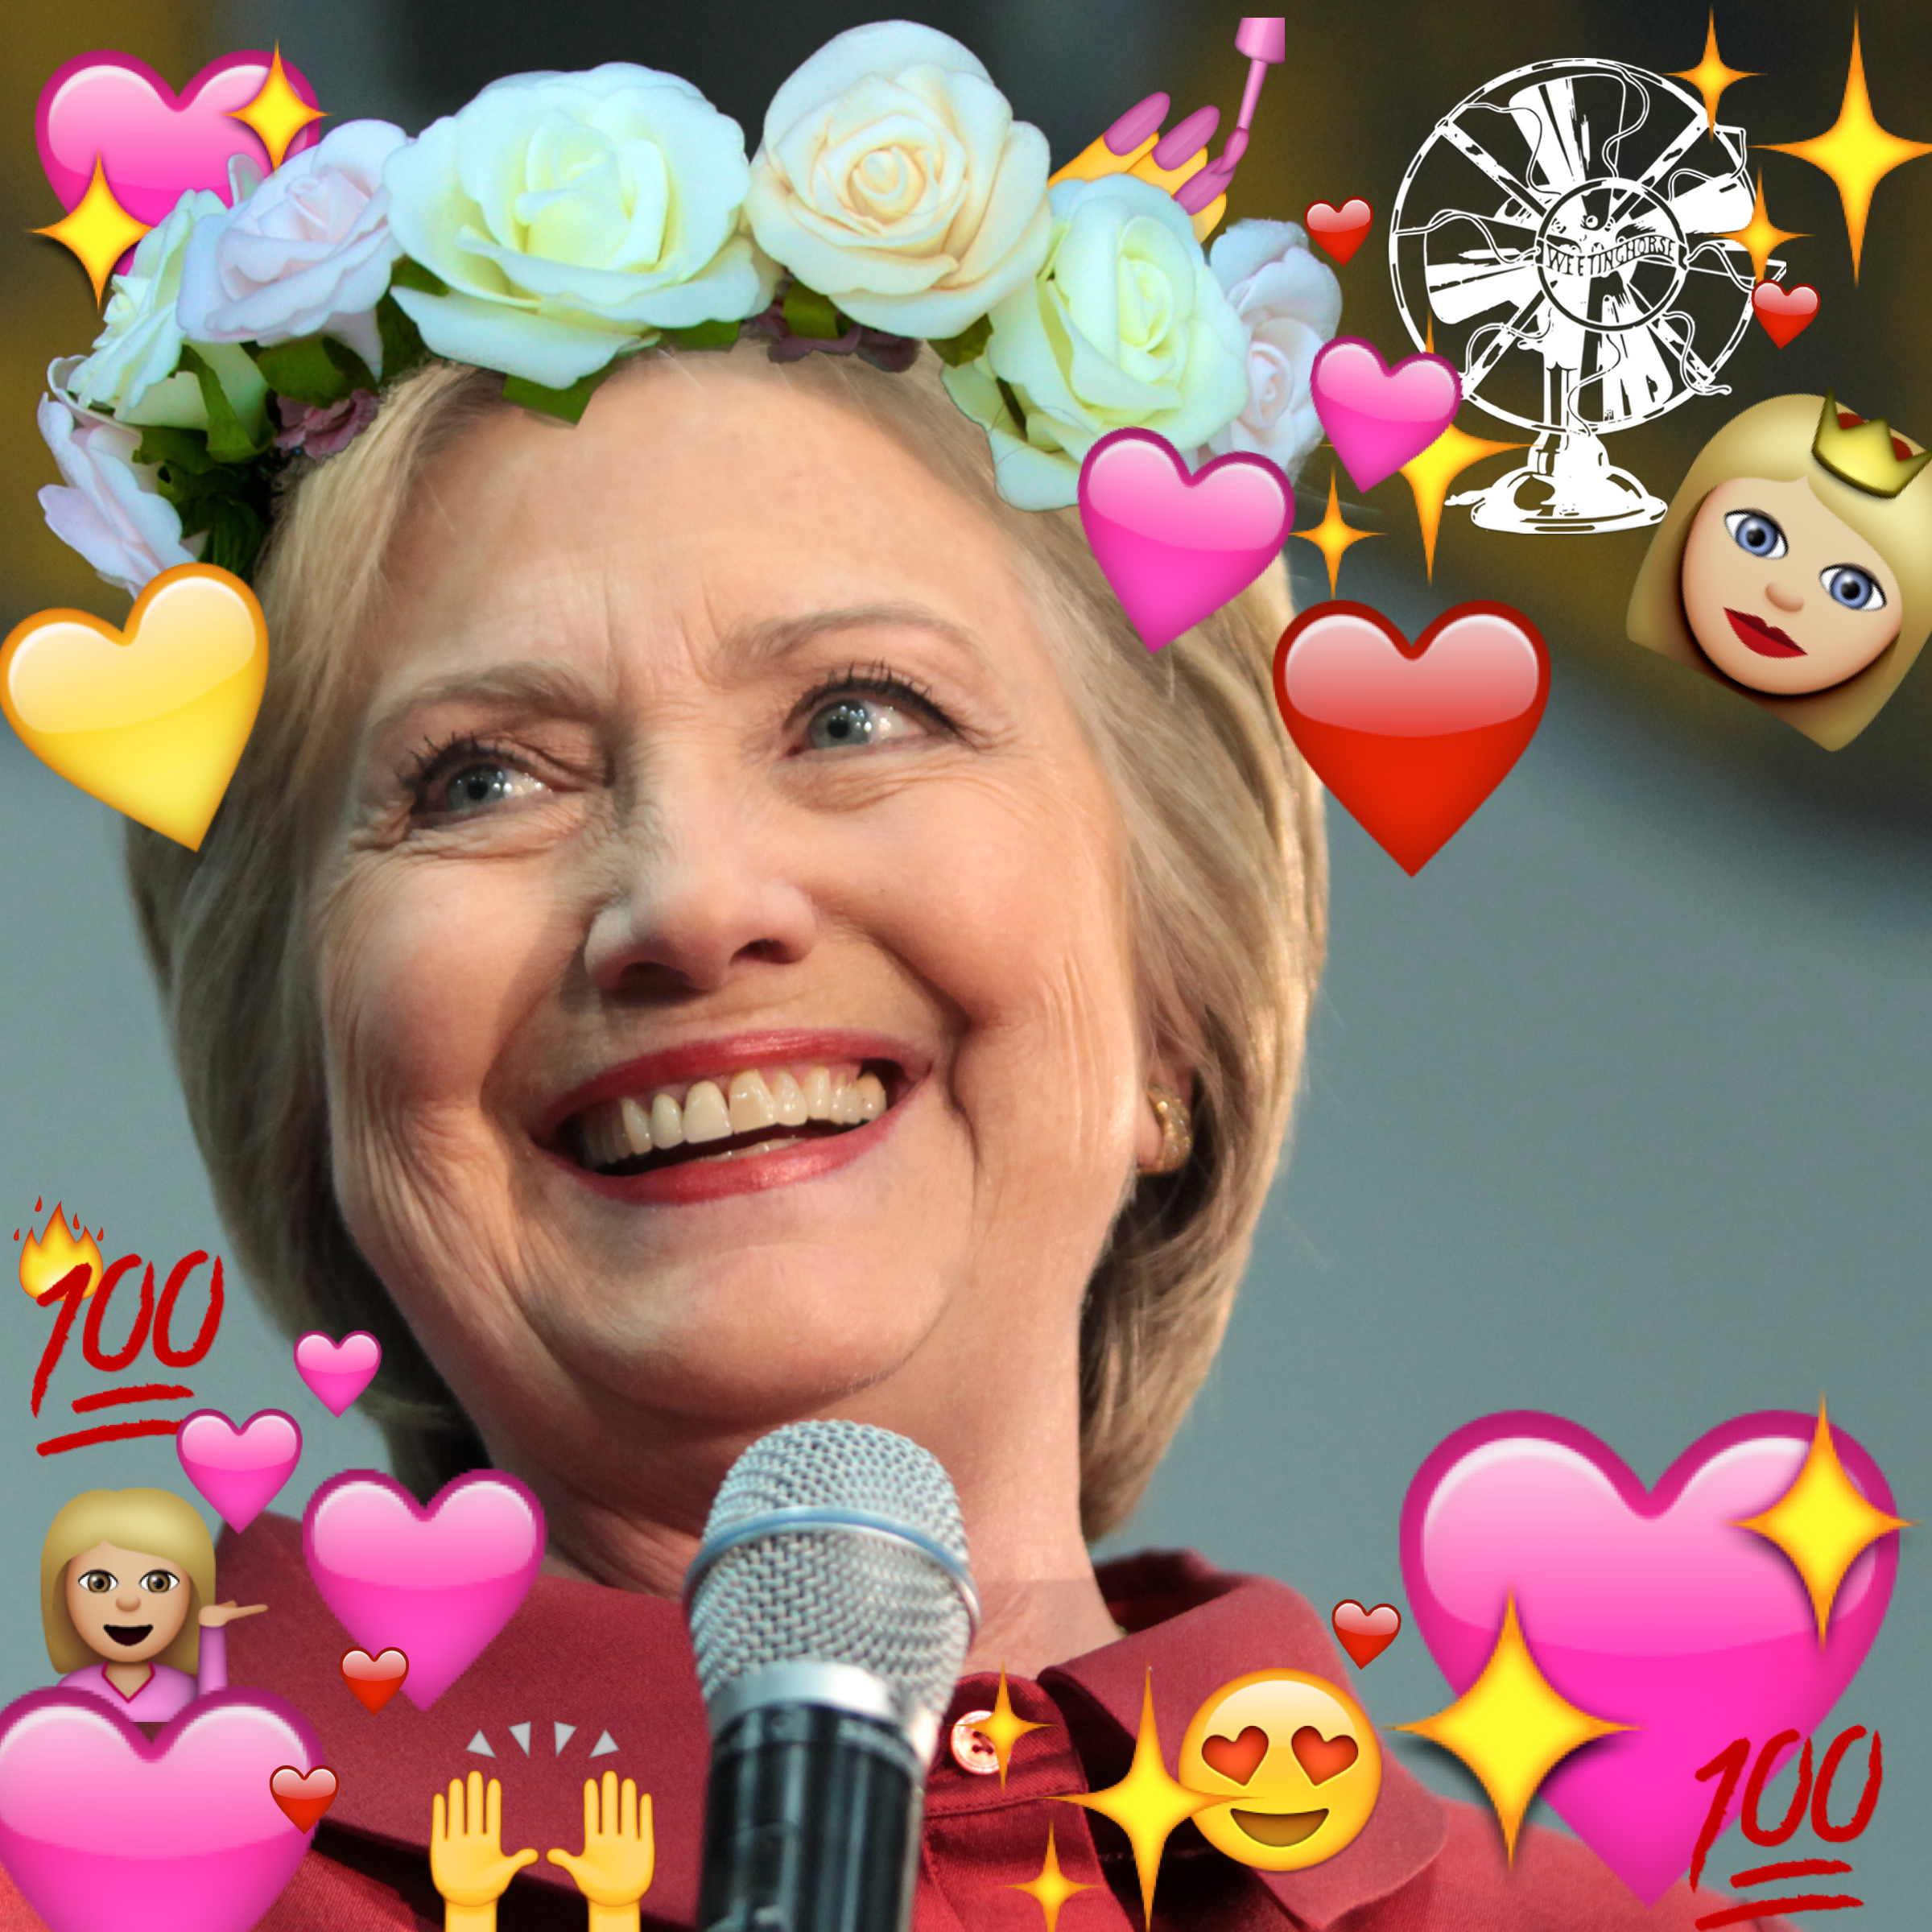 Episode 32's cover: Hillary Clinton, photoshopped so that she is surrounded by positive emoji and wearing a flower crown.